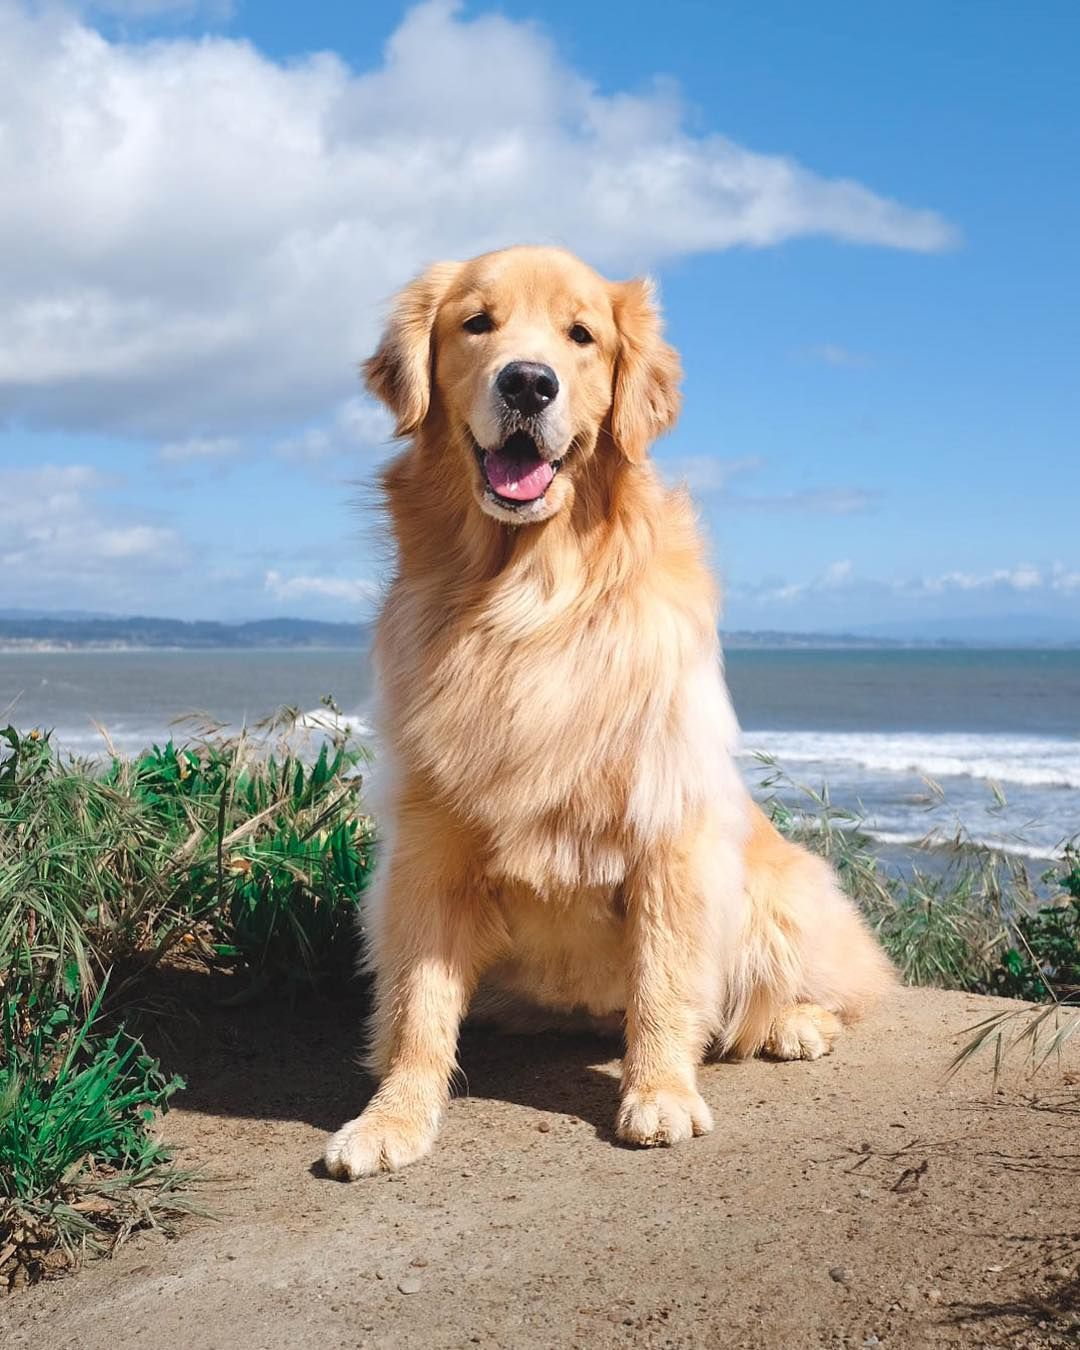 Maya The Golden On Instagram Came For The Picture Stayed To